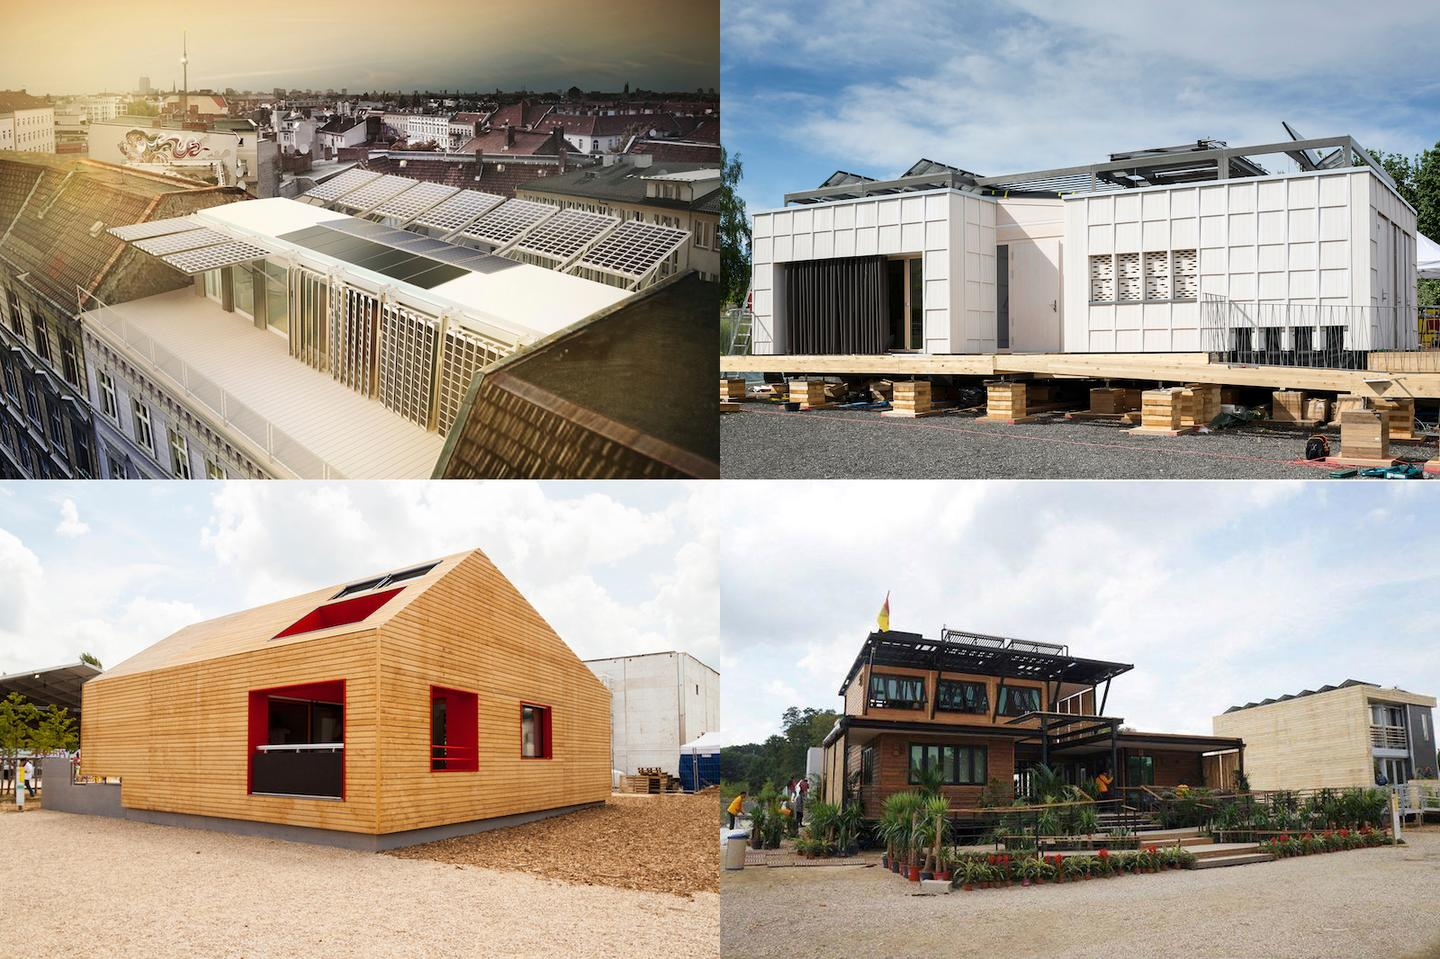 Gizmag takes a look at five highlights from the 2014 European Solar Decathlon competition